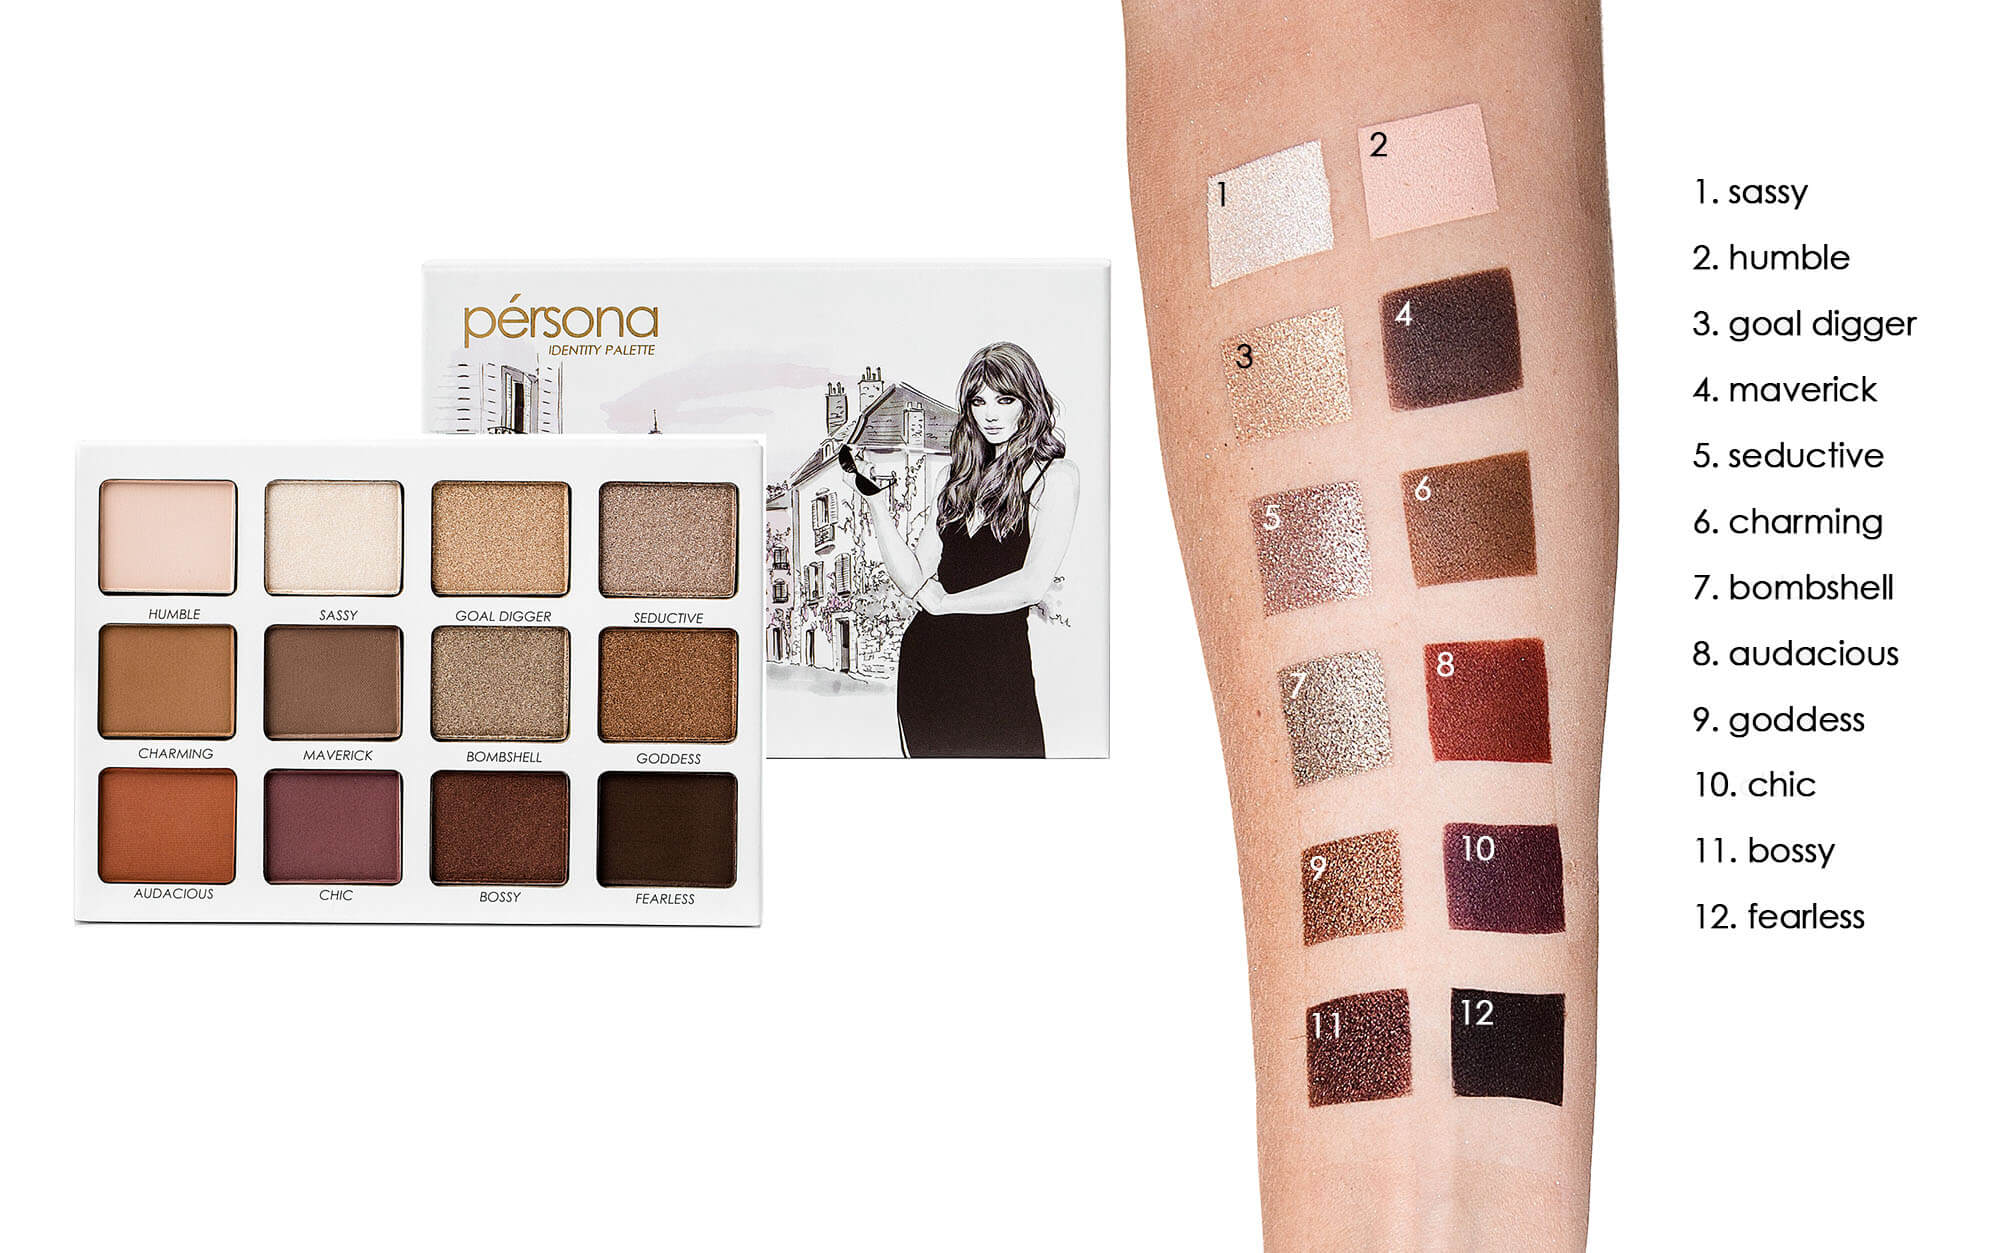 persona cosmetics identity palette swatches